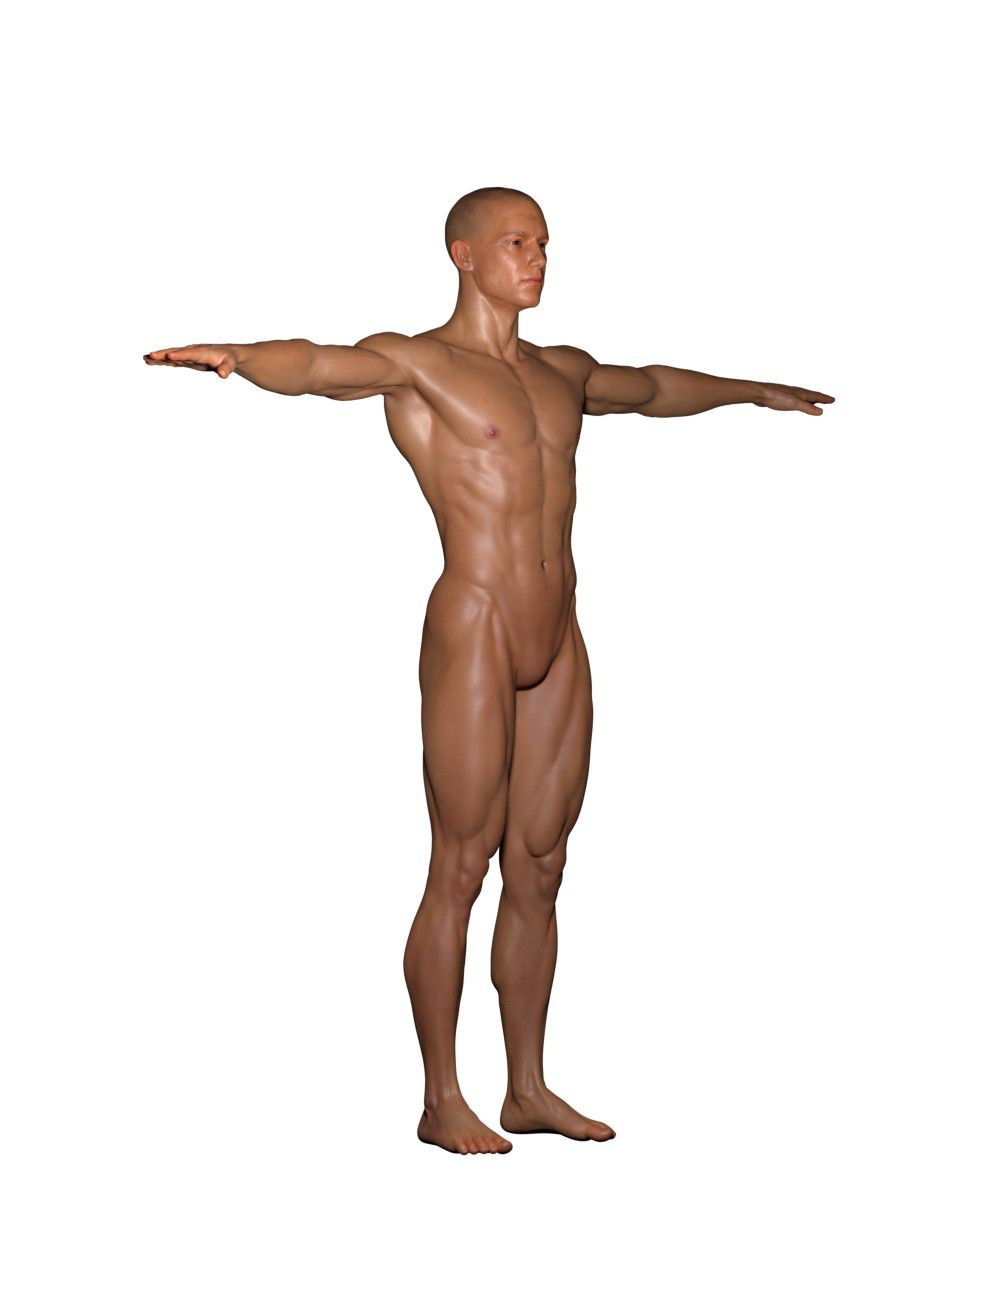 ArtStation - Male Anatomy references for Artists PDF is comming ...